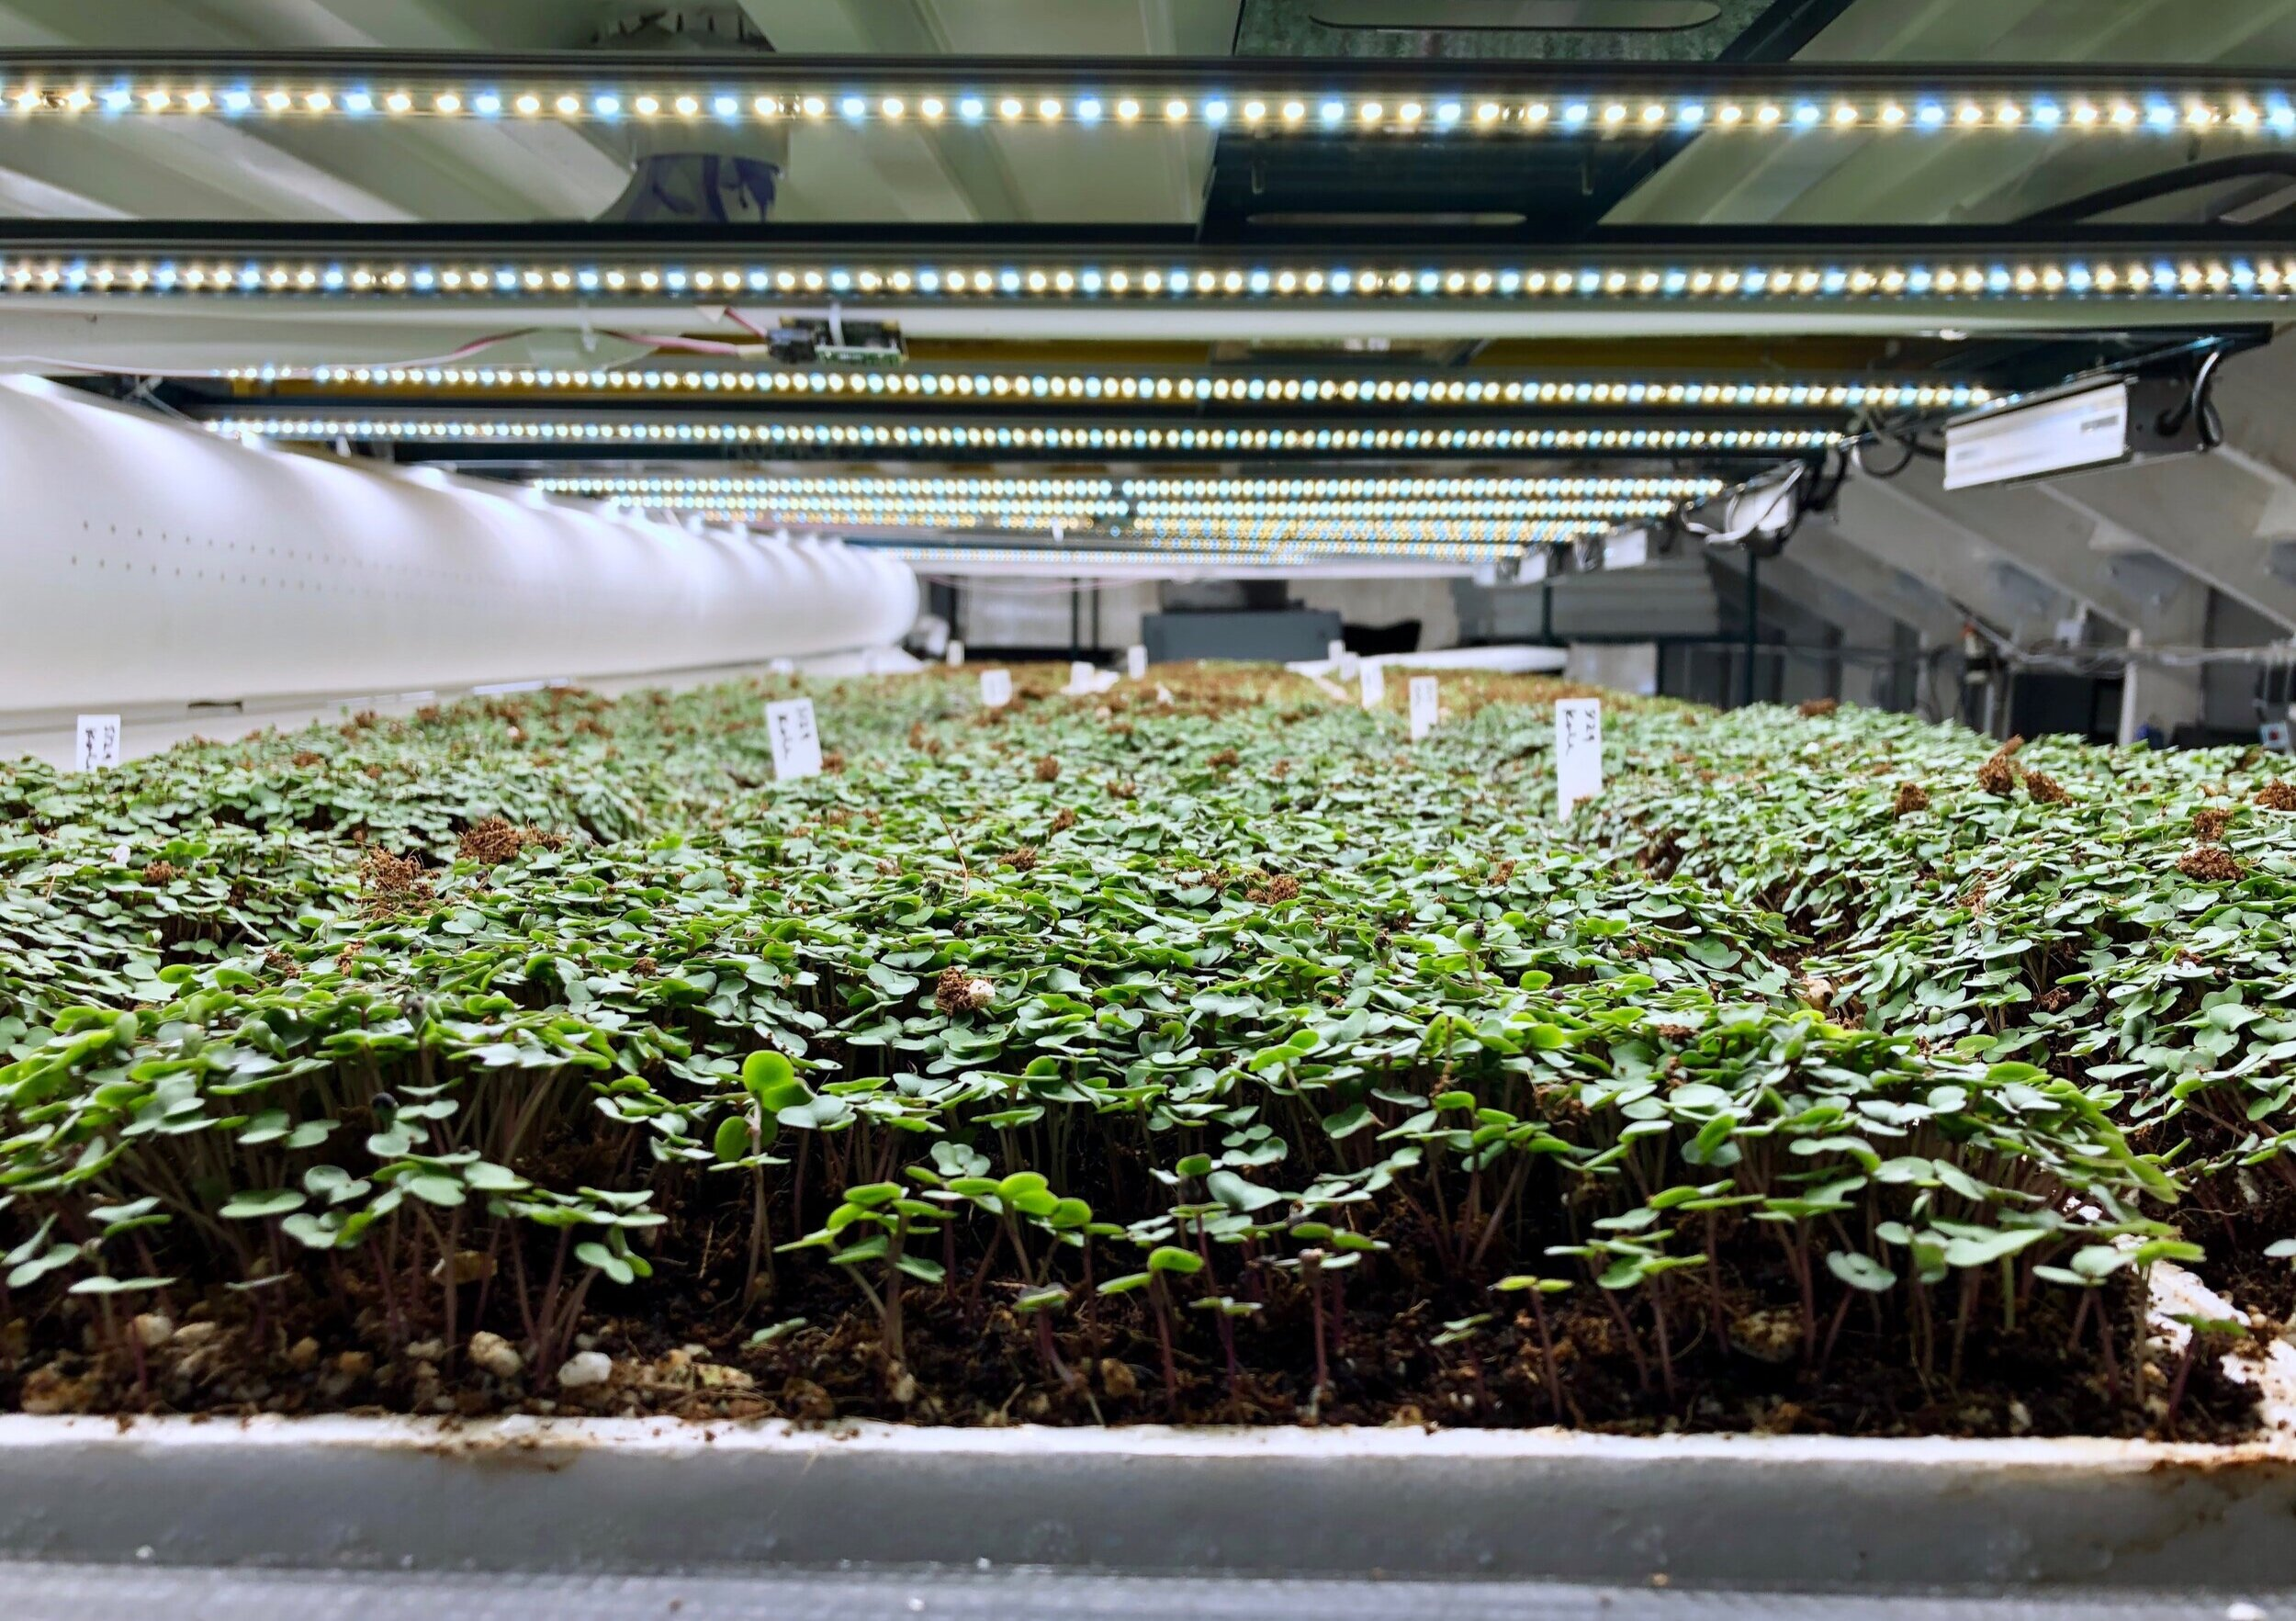 Microgreens growing in a pond within vertical racks